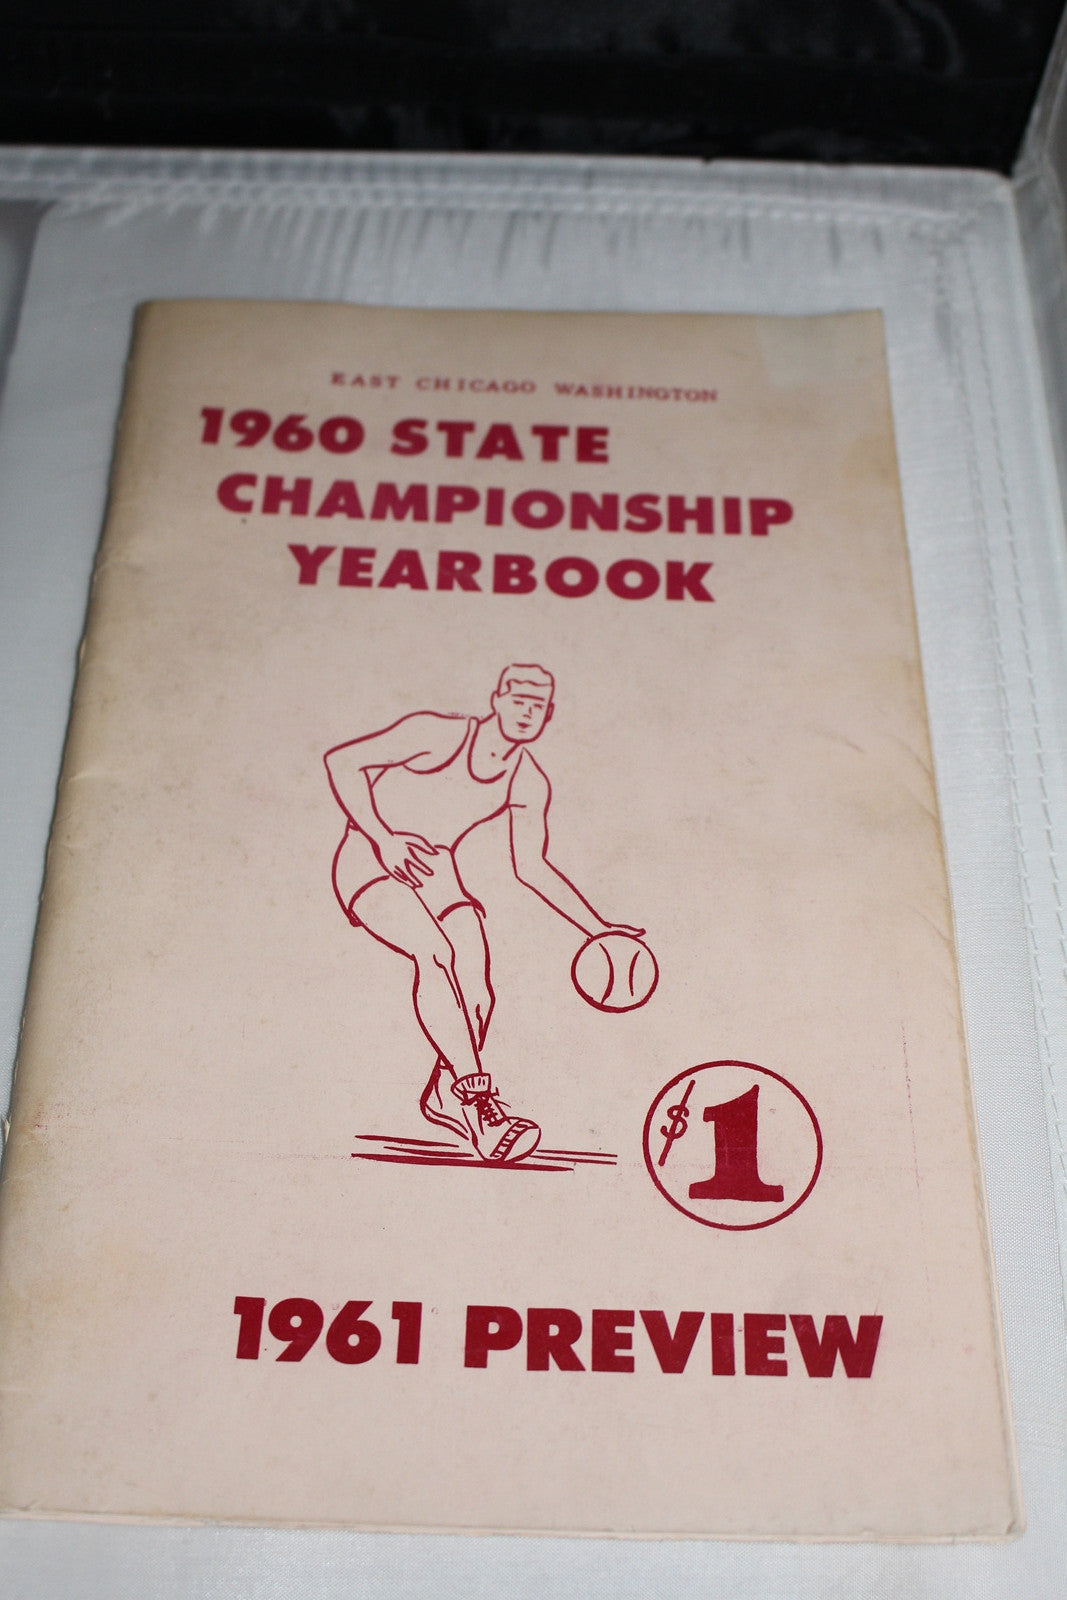 1960 East Chicago Washington Indiana High School Basketball State Championship Yearbook - Vintage Indy Sports